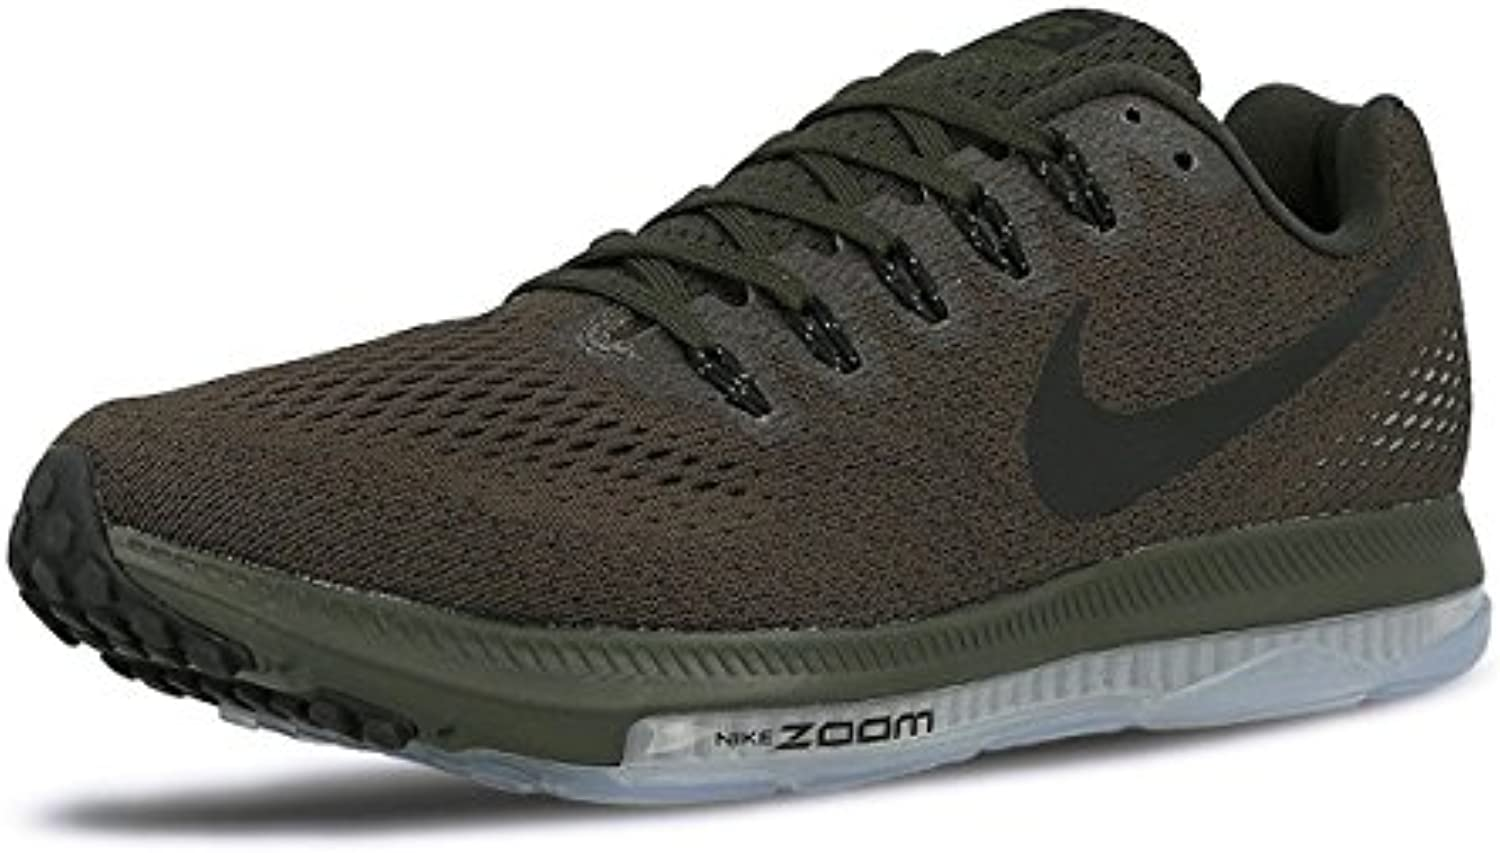 NIKE Mens Zoom All Out Low Sequoia/Palm Green/Pure Platinum/Black Nylon Running Shoes 9 M US